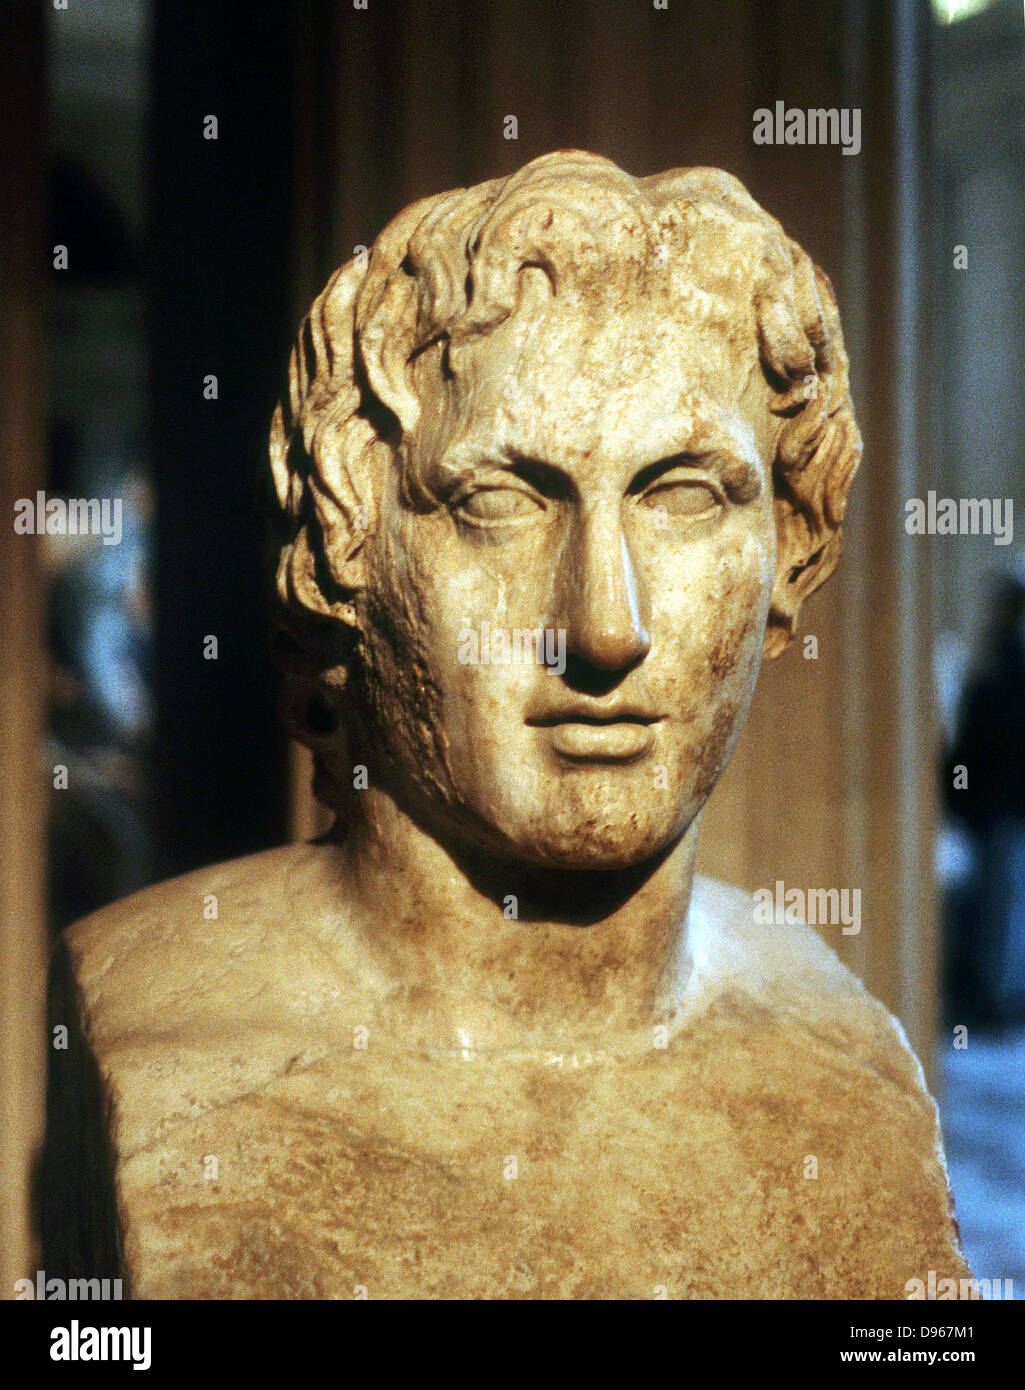 alexander iii of macedon Alexandros iii philippou makedonon (alexander the great, alexander iii of macedon) (356-323 bc), king of macedonia, born in late july 356 bc in pella, macedonia, one of the greatest military genius in history.